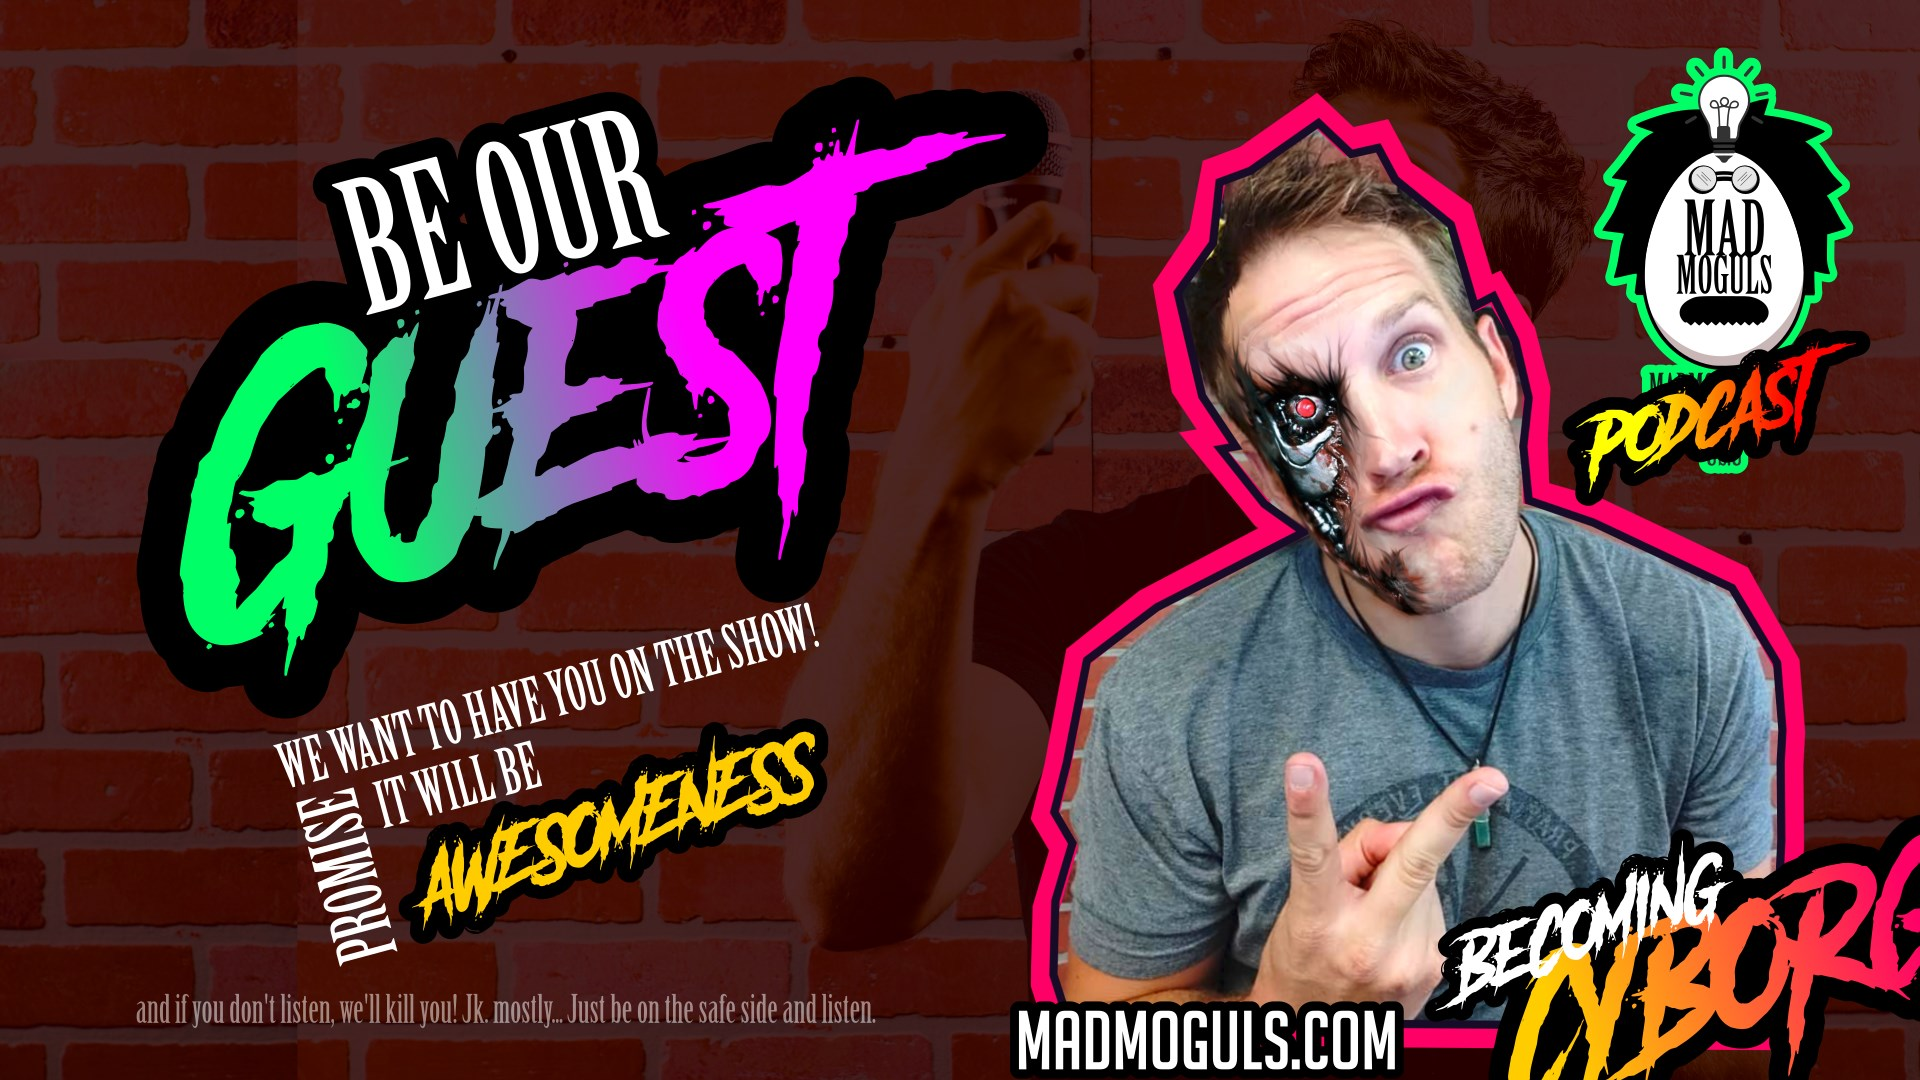 Be Our Guest - Mad Moguls Facebook Advertisement